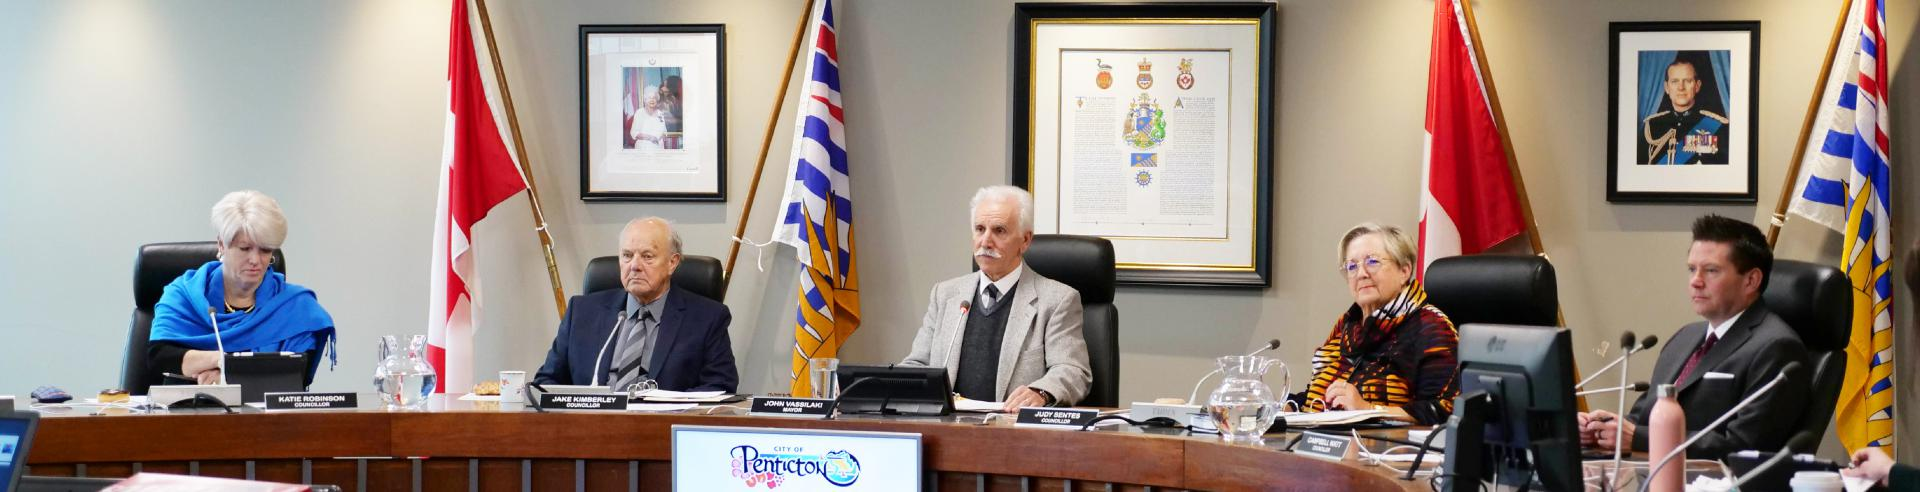 Penticton City Council Meeting